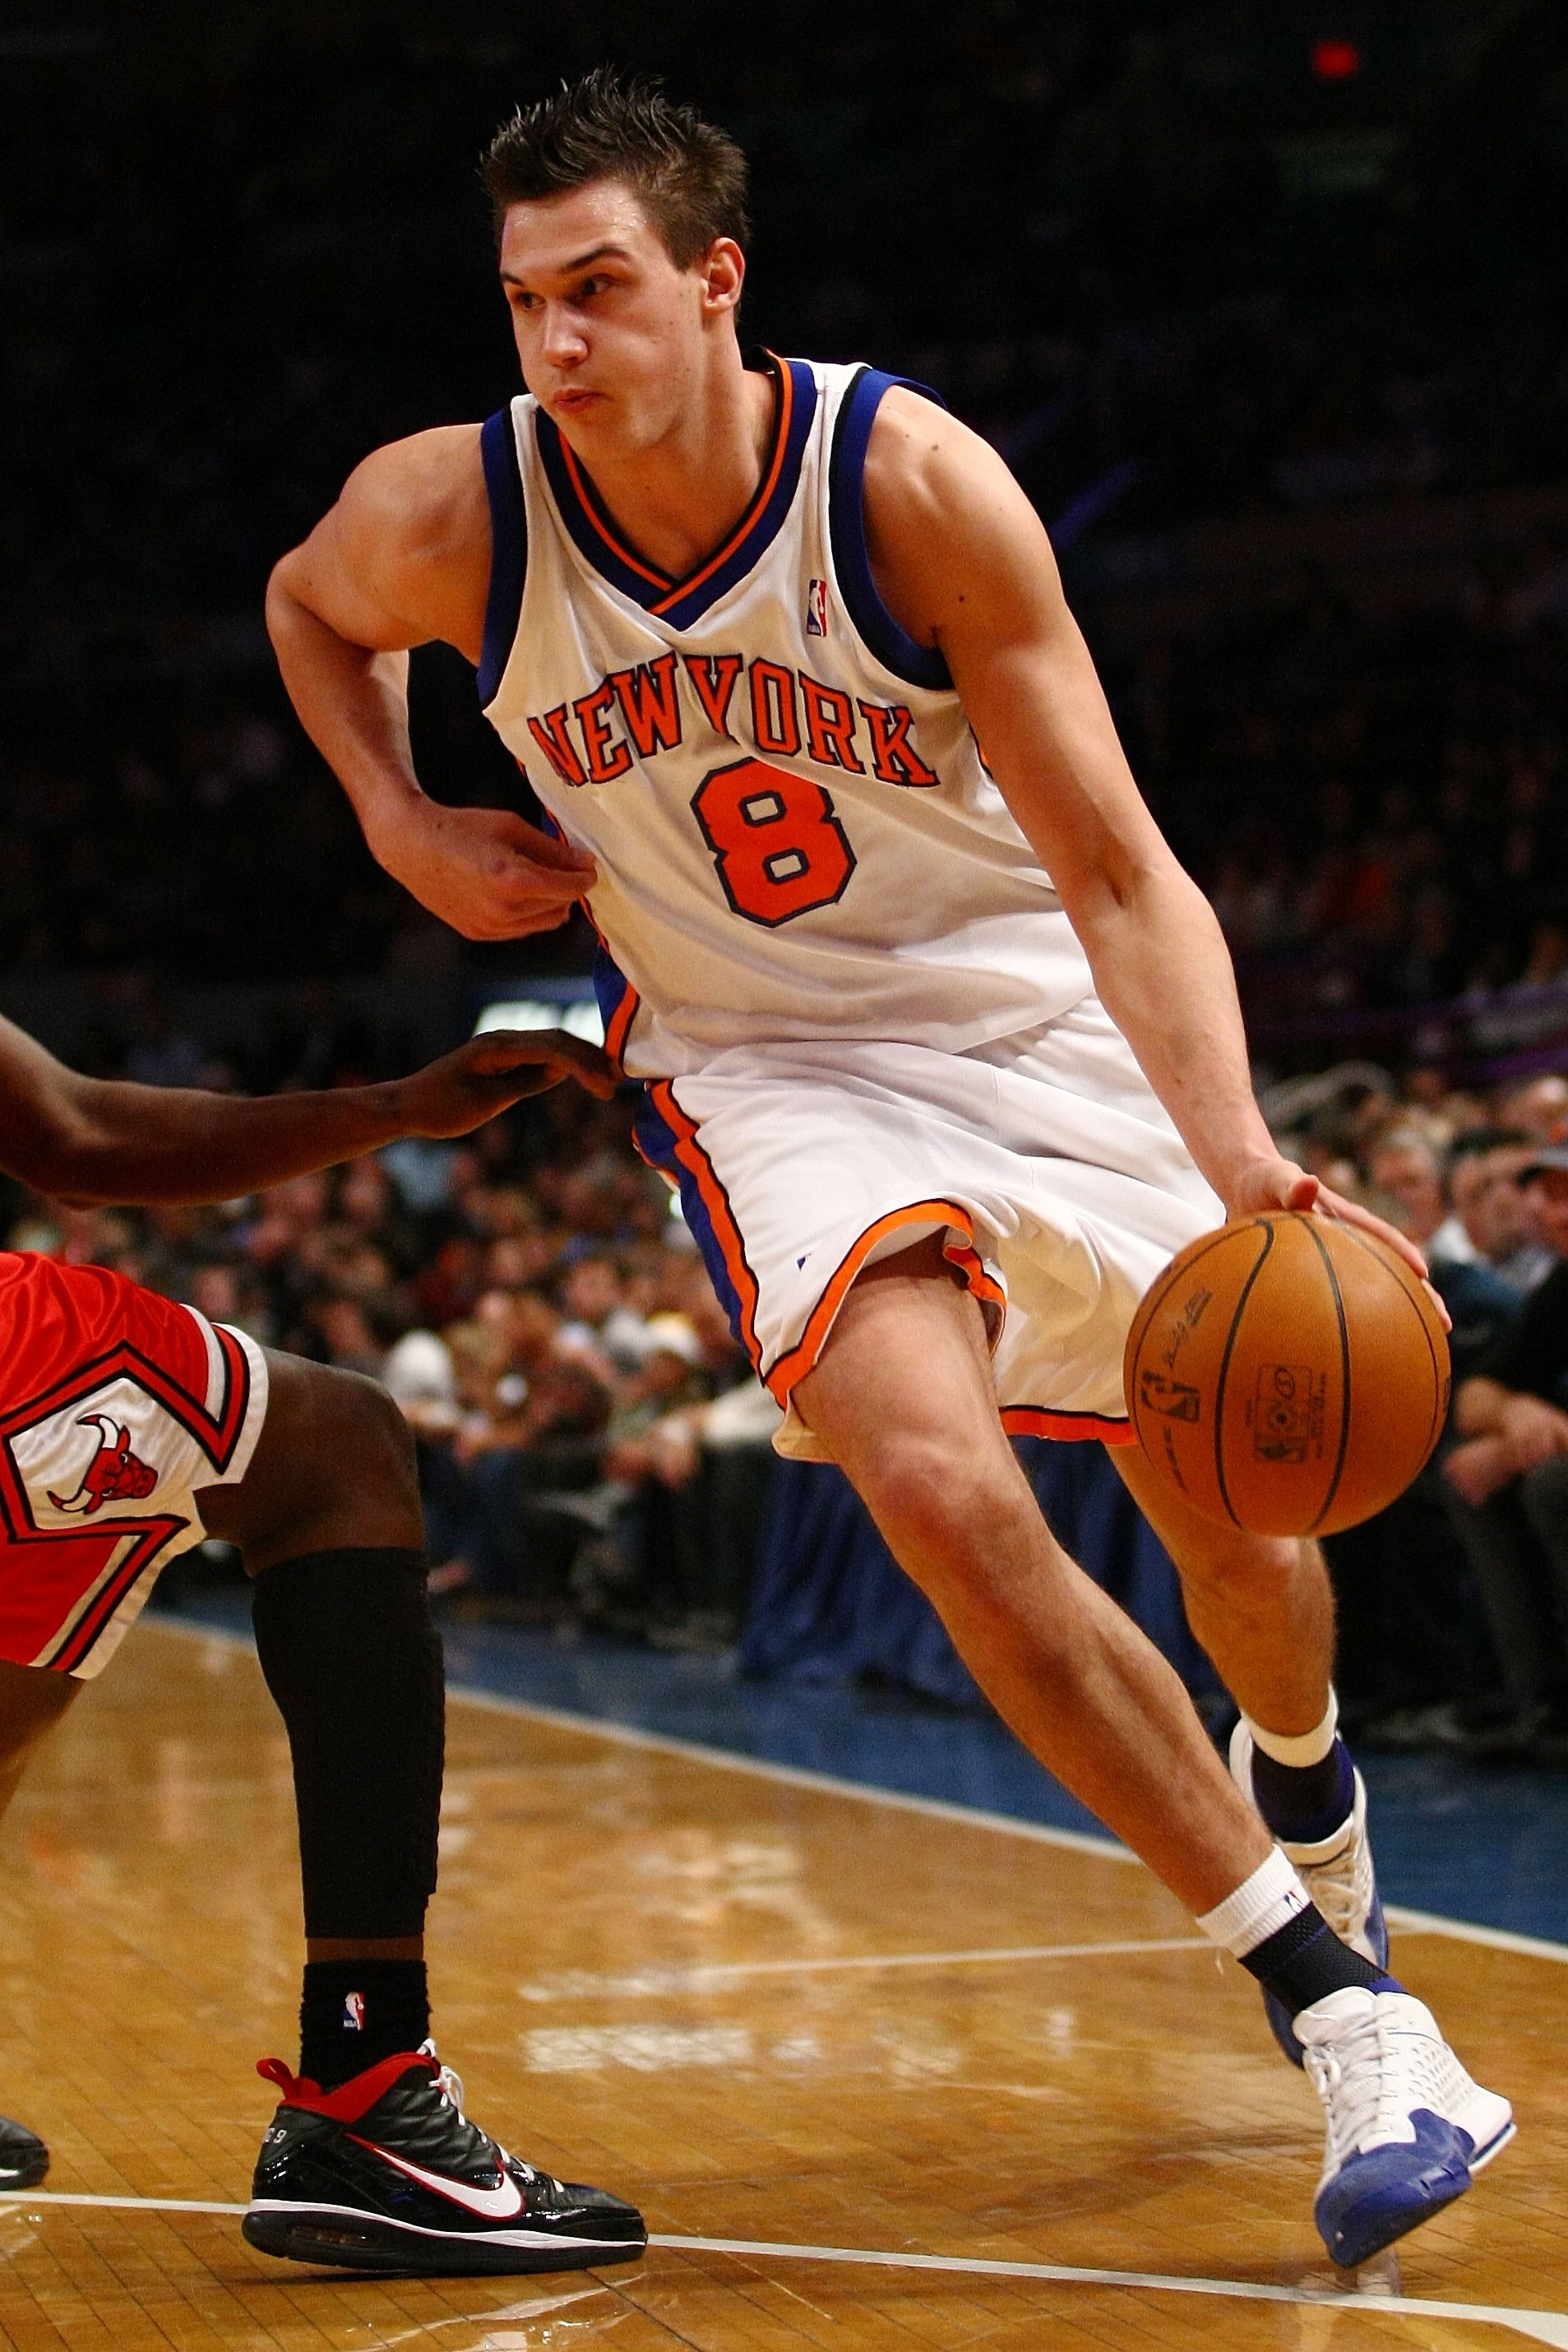 NEW YORK - DECEMBER 22:  Danilo Gallinari #8 of the New York Knicks drives to the basket against the Chicago Bulls at Madison Square Garden on December 22, 2009 in New York City. NOTE TO USER: User expressly acknowledges and agrees that, by downloading an